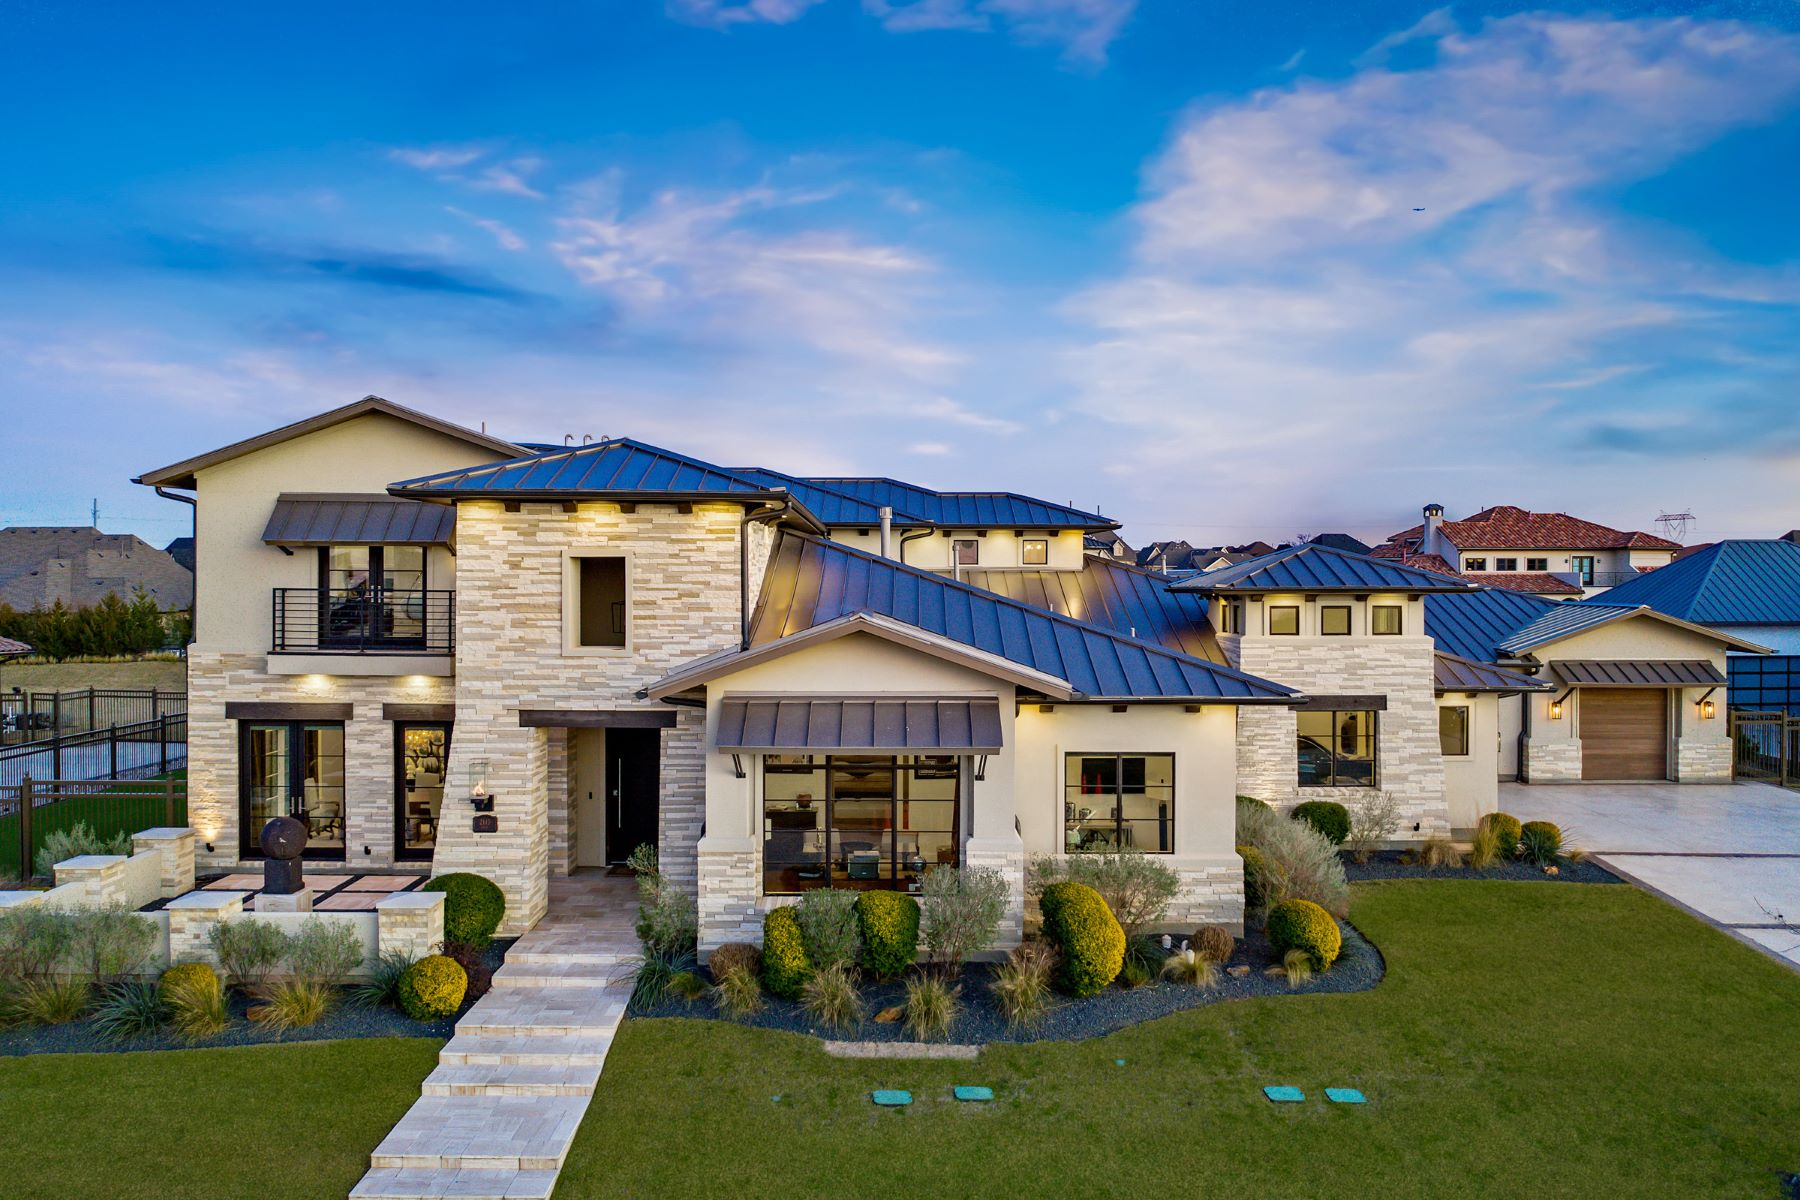 Single Family Homes for Active at Gorgeous Contemporary Home on 0.7809 Acres 2143 Lilac Lane Frisco, Texas 75034 United States